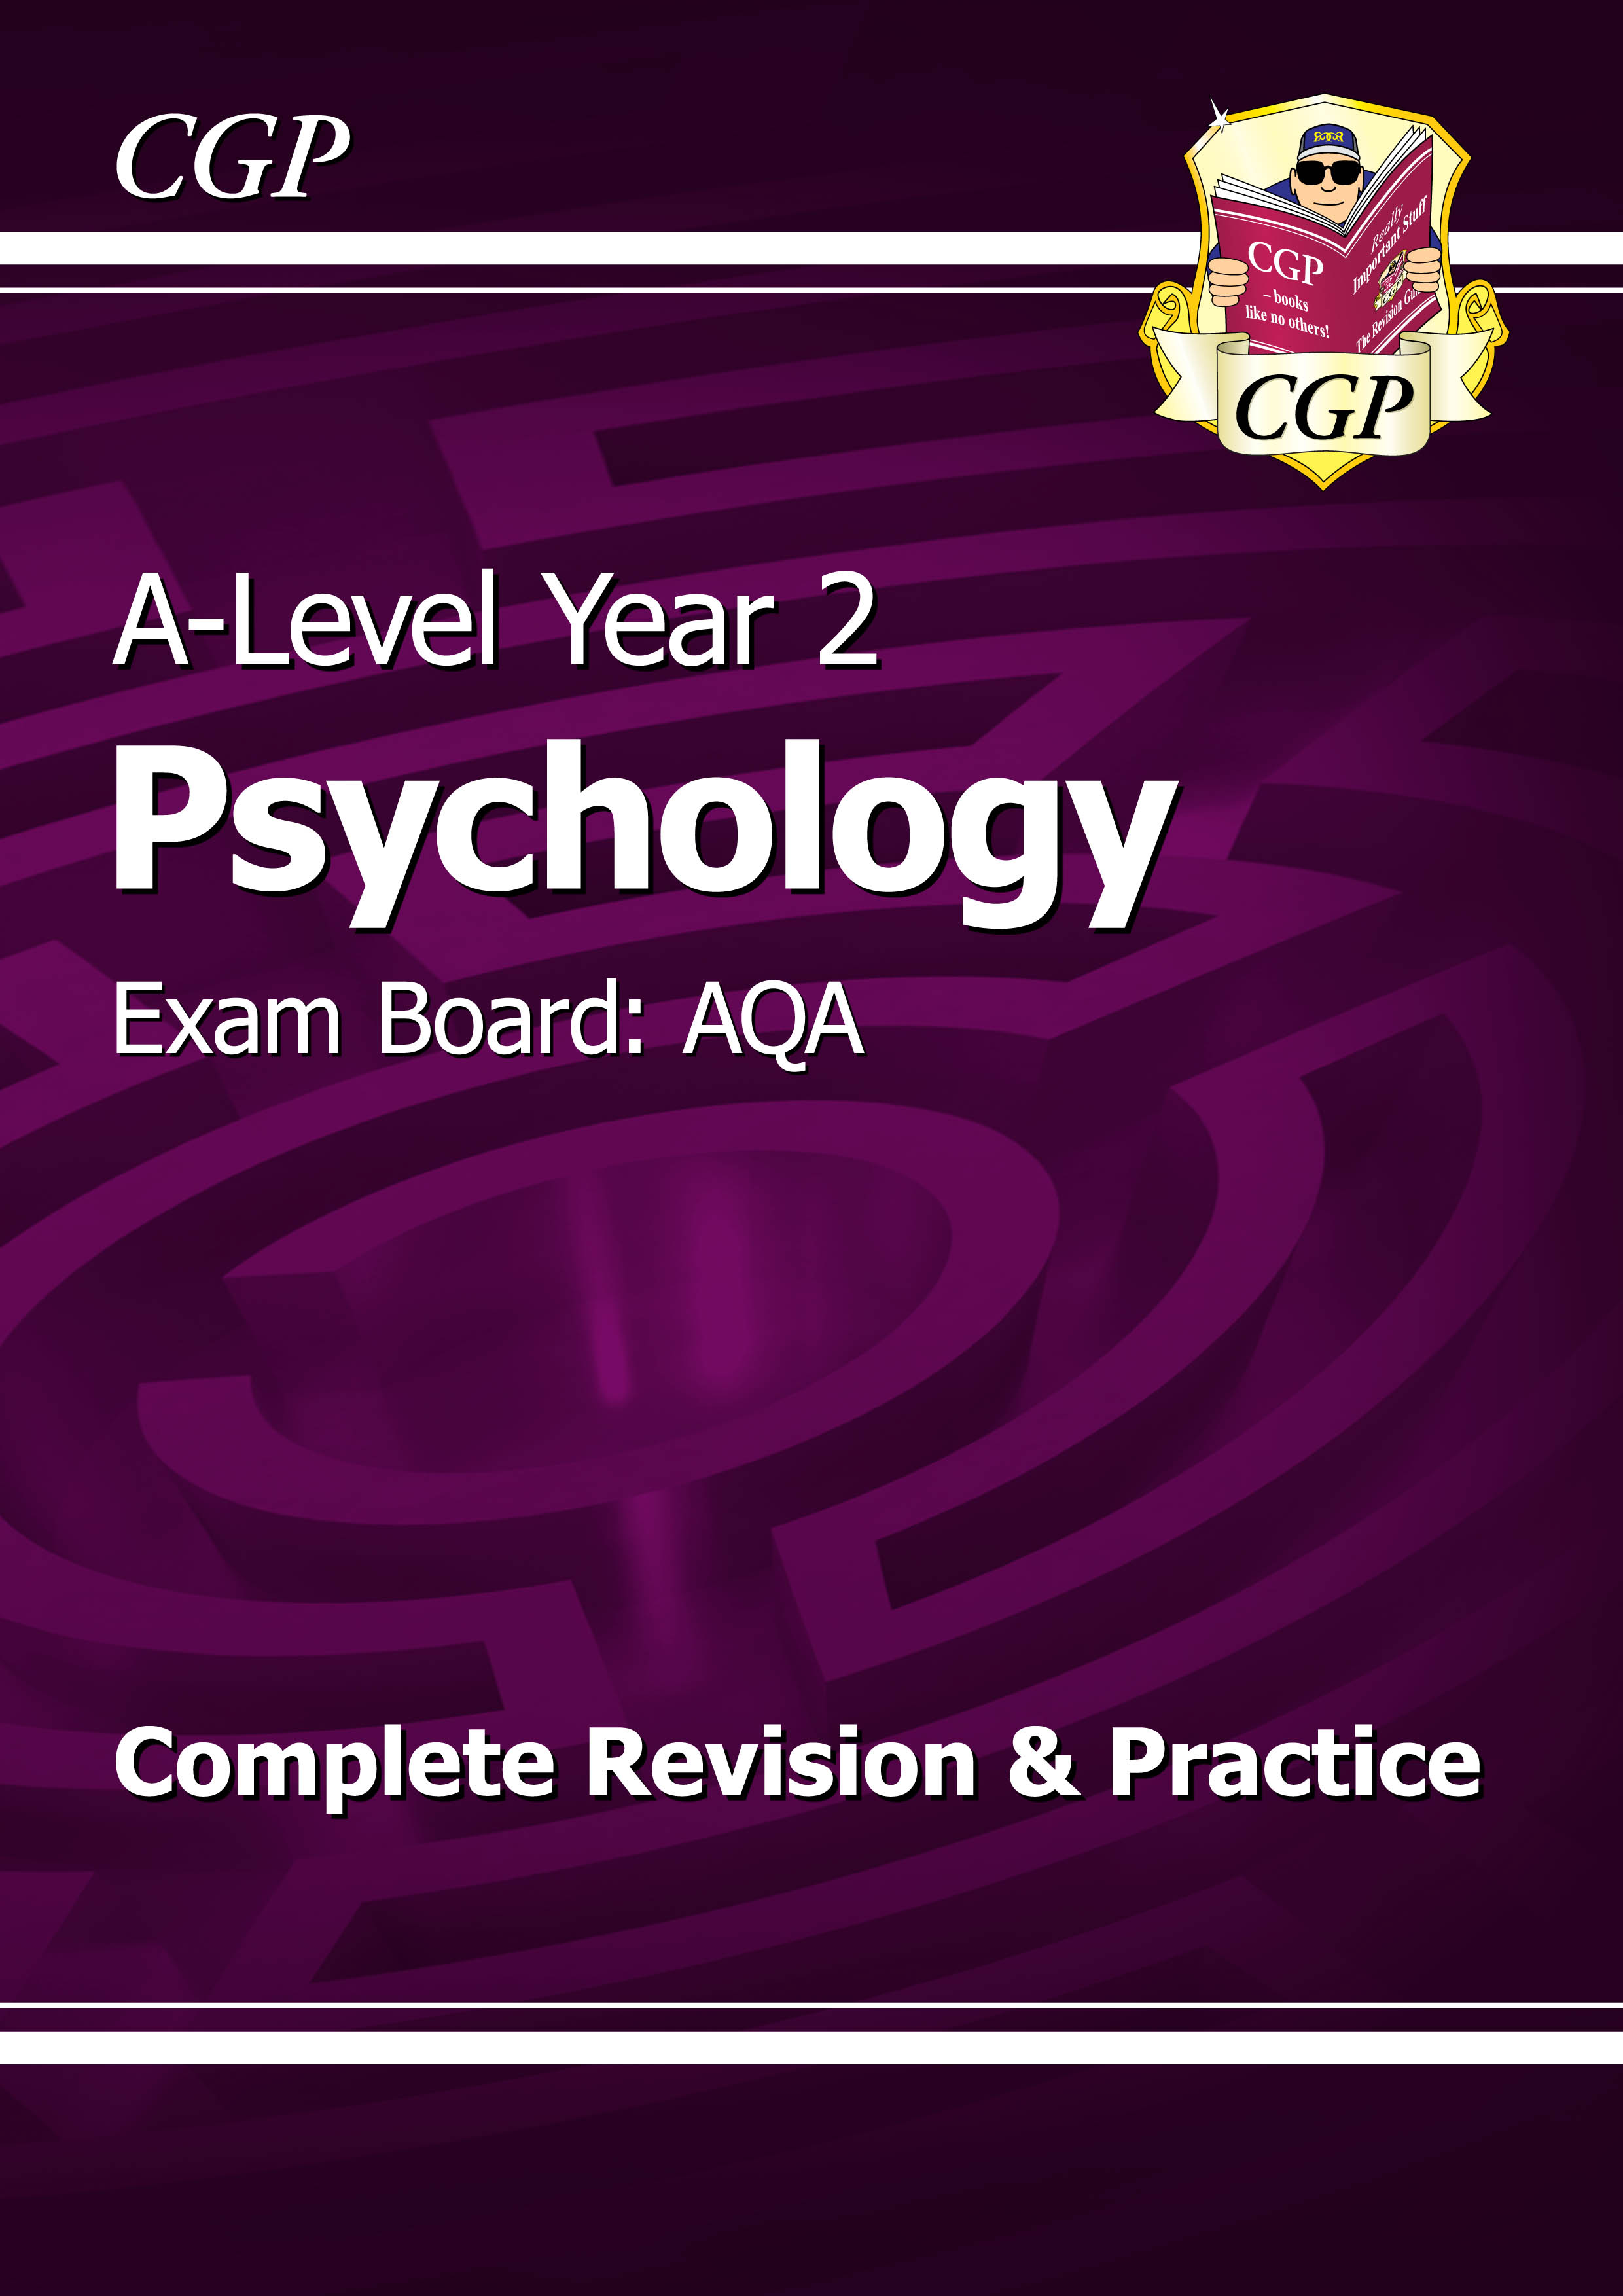 PYAR63DK - A-Level Psychology: AQA Year 2 Complete Revision & Practice